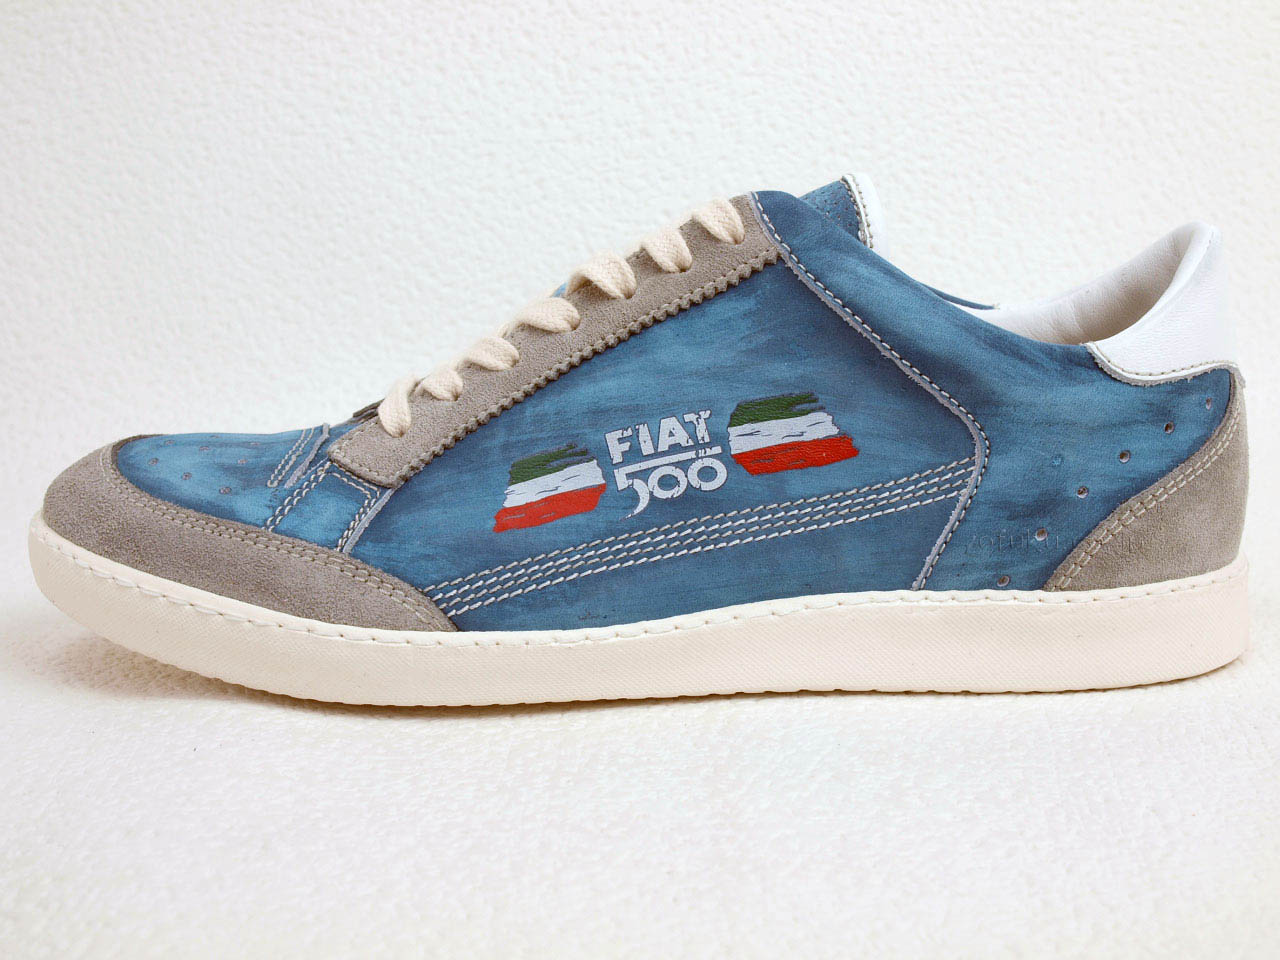 4bf12f09ac4a Index of  images Italy-shoes fiat ft001navy